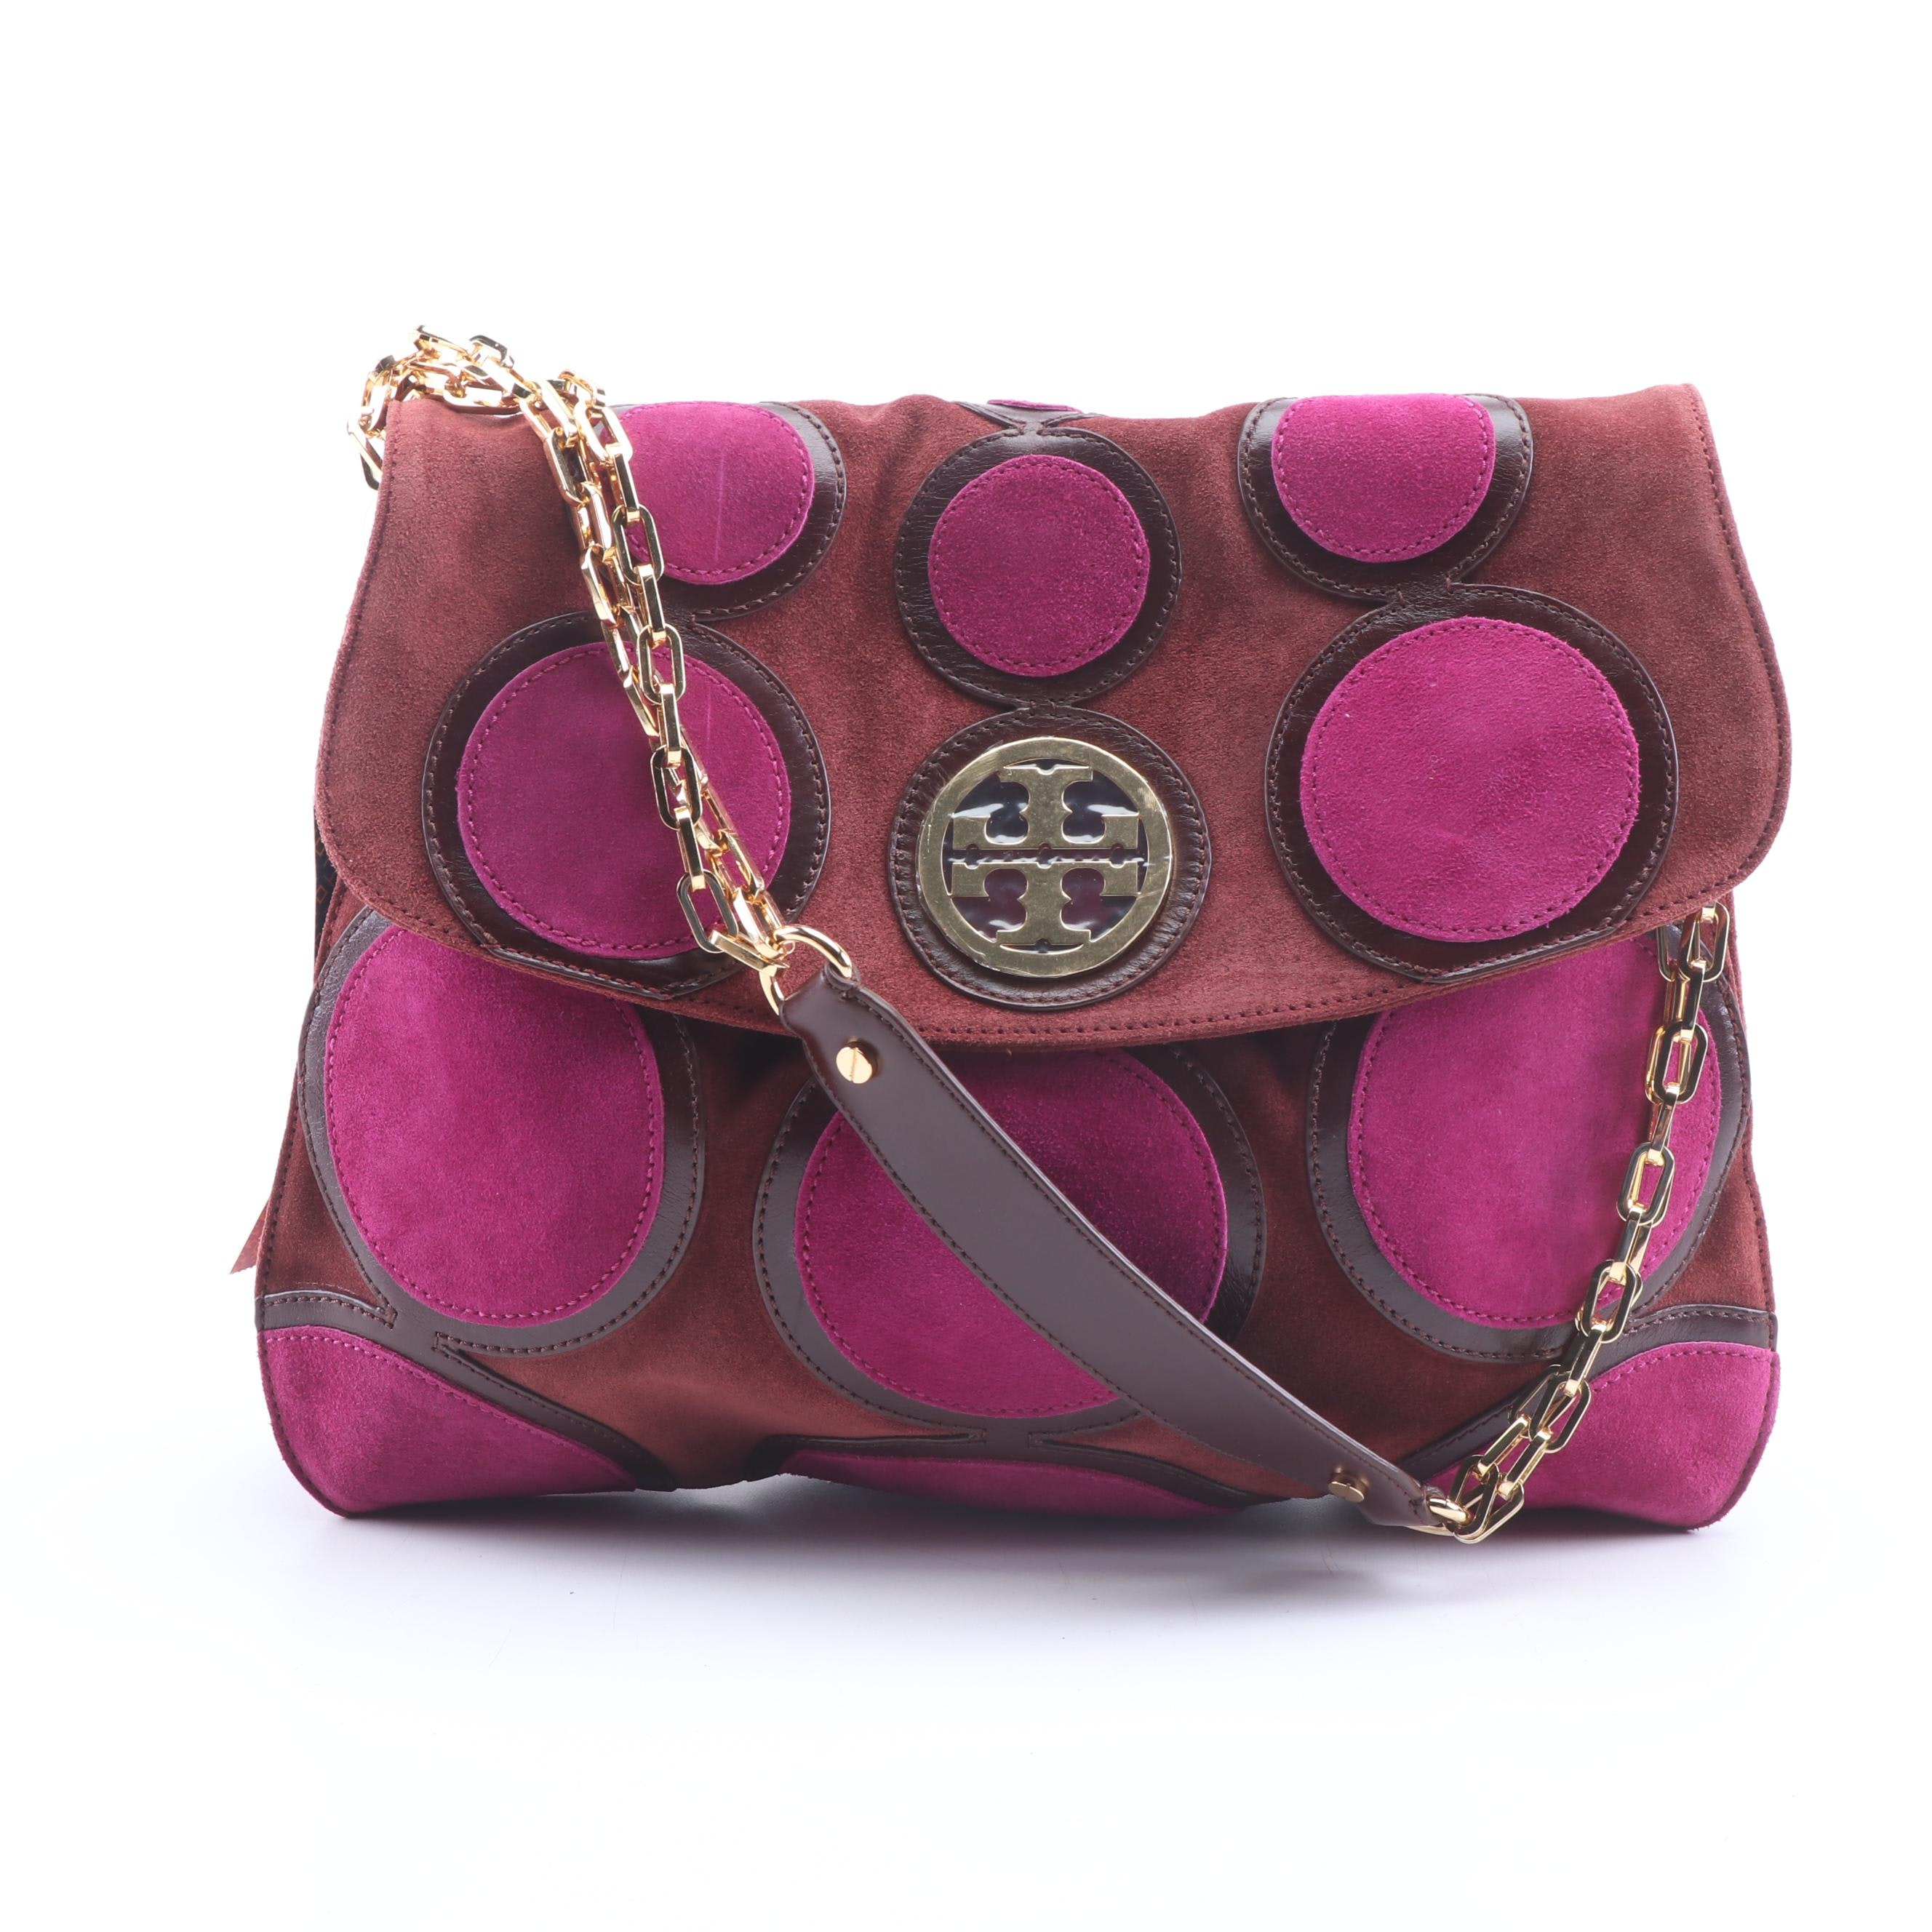 Tory Burch Suede and Leather Circle Happy Hobo Bag